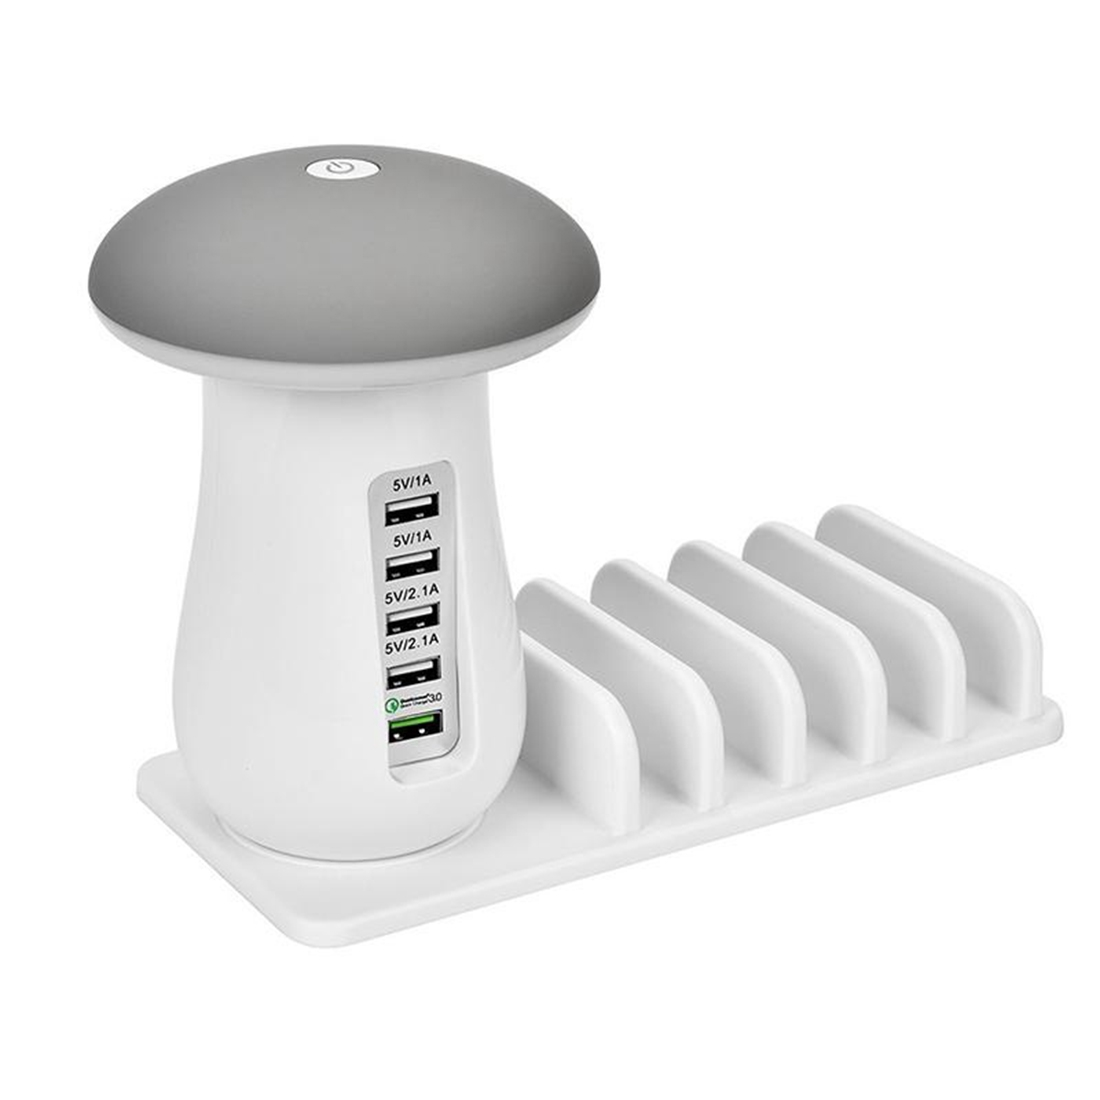 Mushroom LED Night Light 5-Port USB EU Plug Quick Charging Station Universal Desktop Tablet and Smartphone Charger 2100MA Lamp orico dcap 5u 5 port usb wall charger for tablet and smartphone